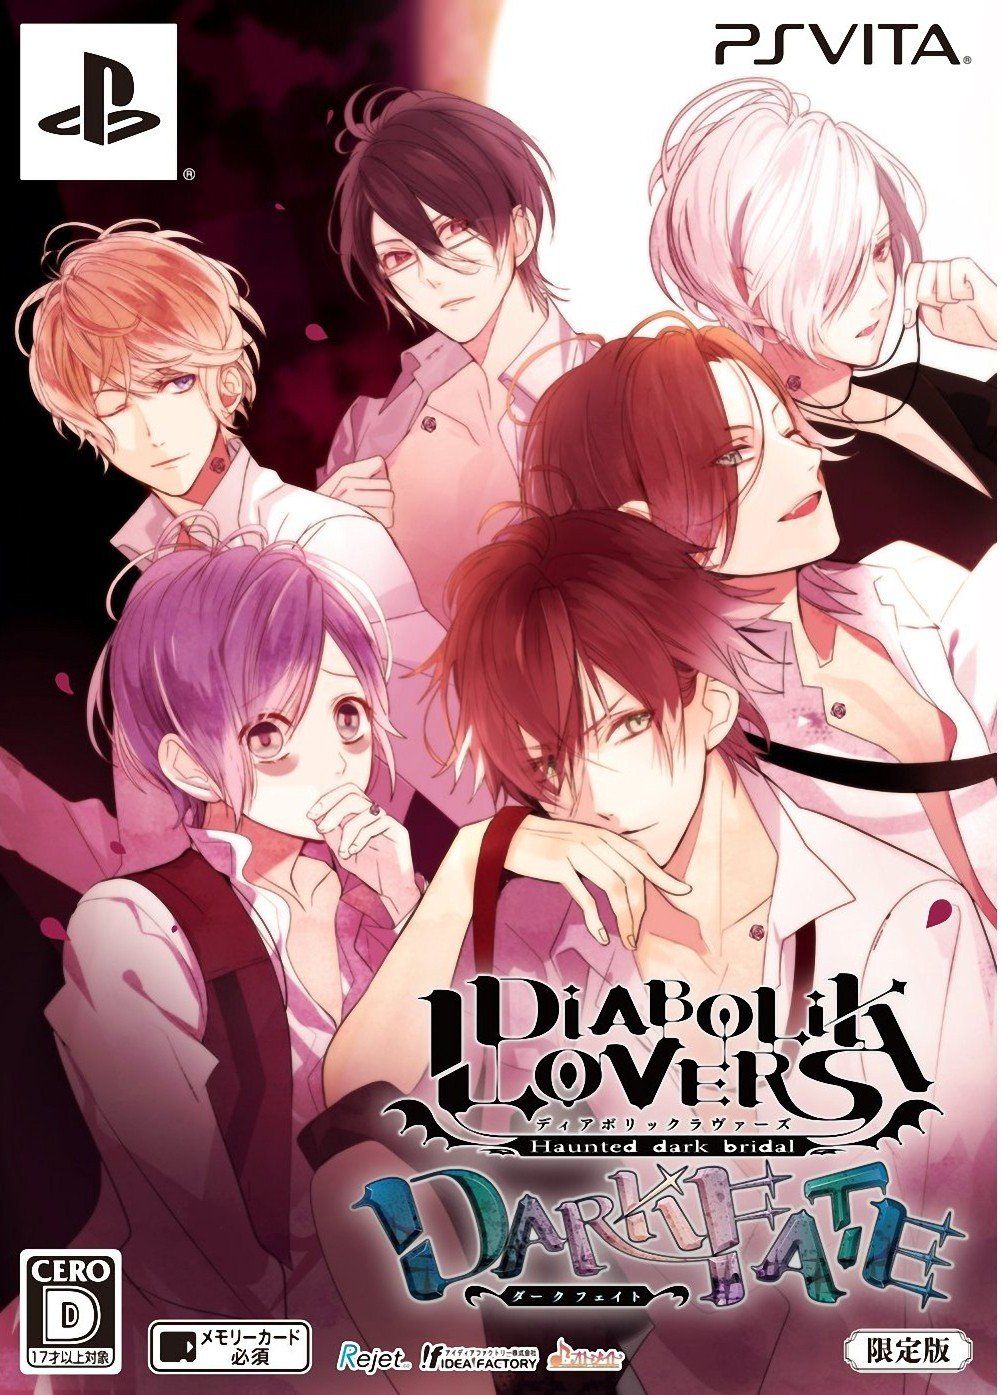 DIABOLIK LOVERS OAD 魔鬼恋人 OAD